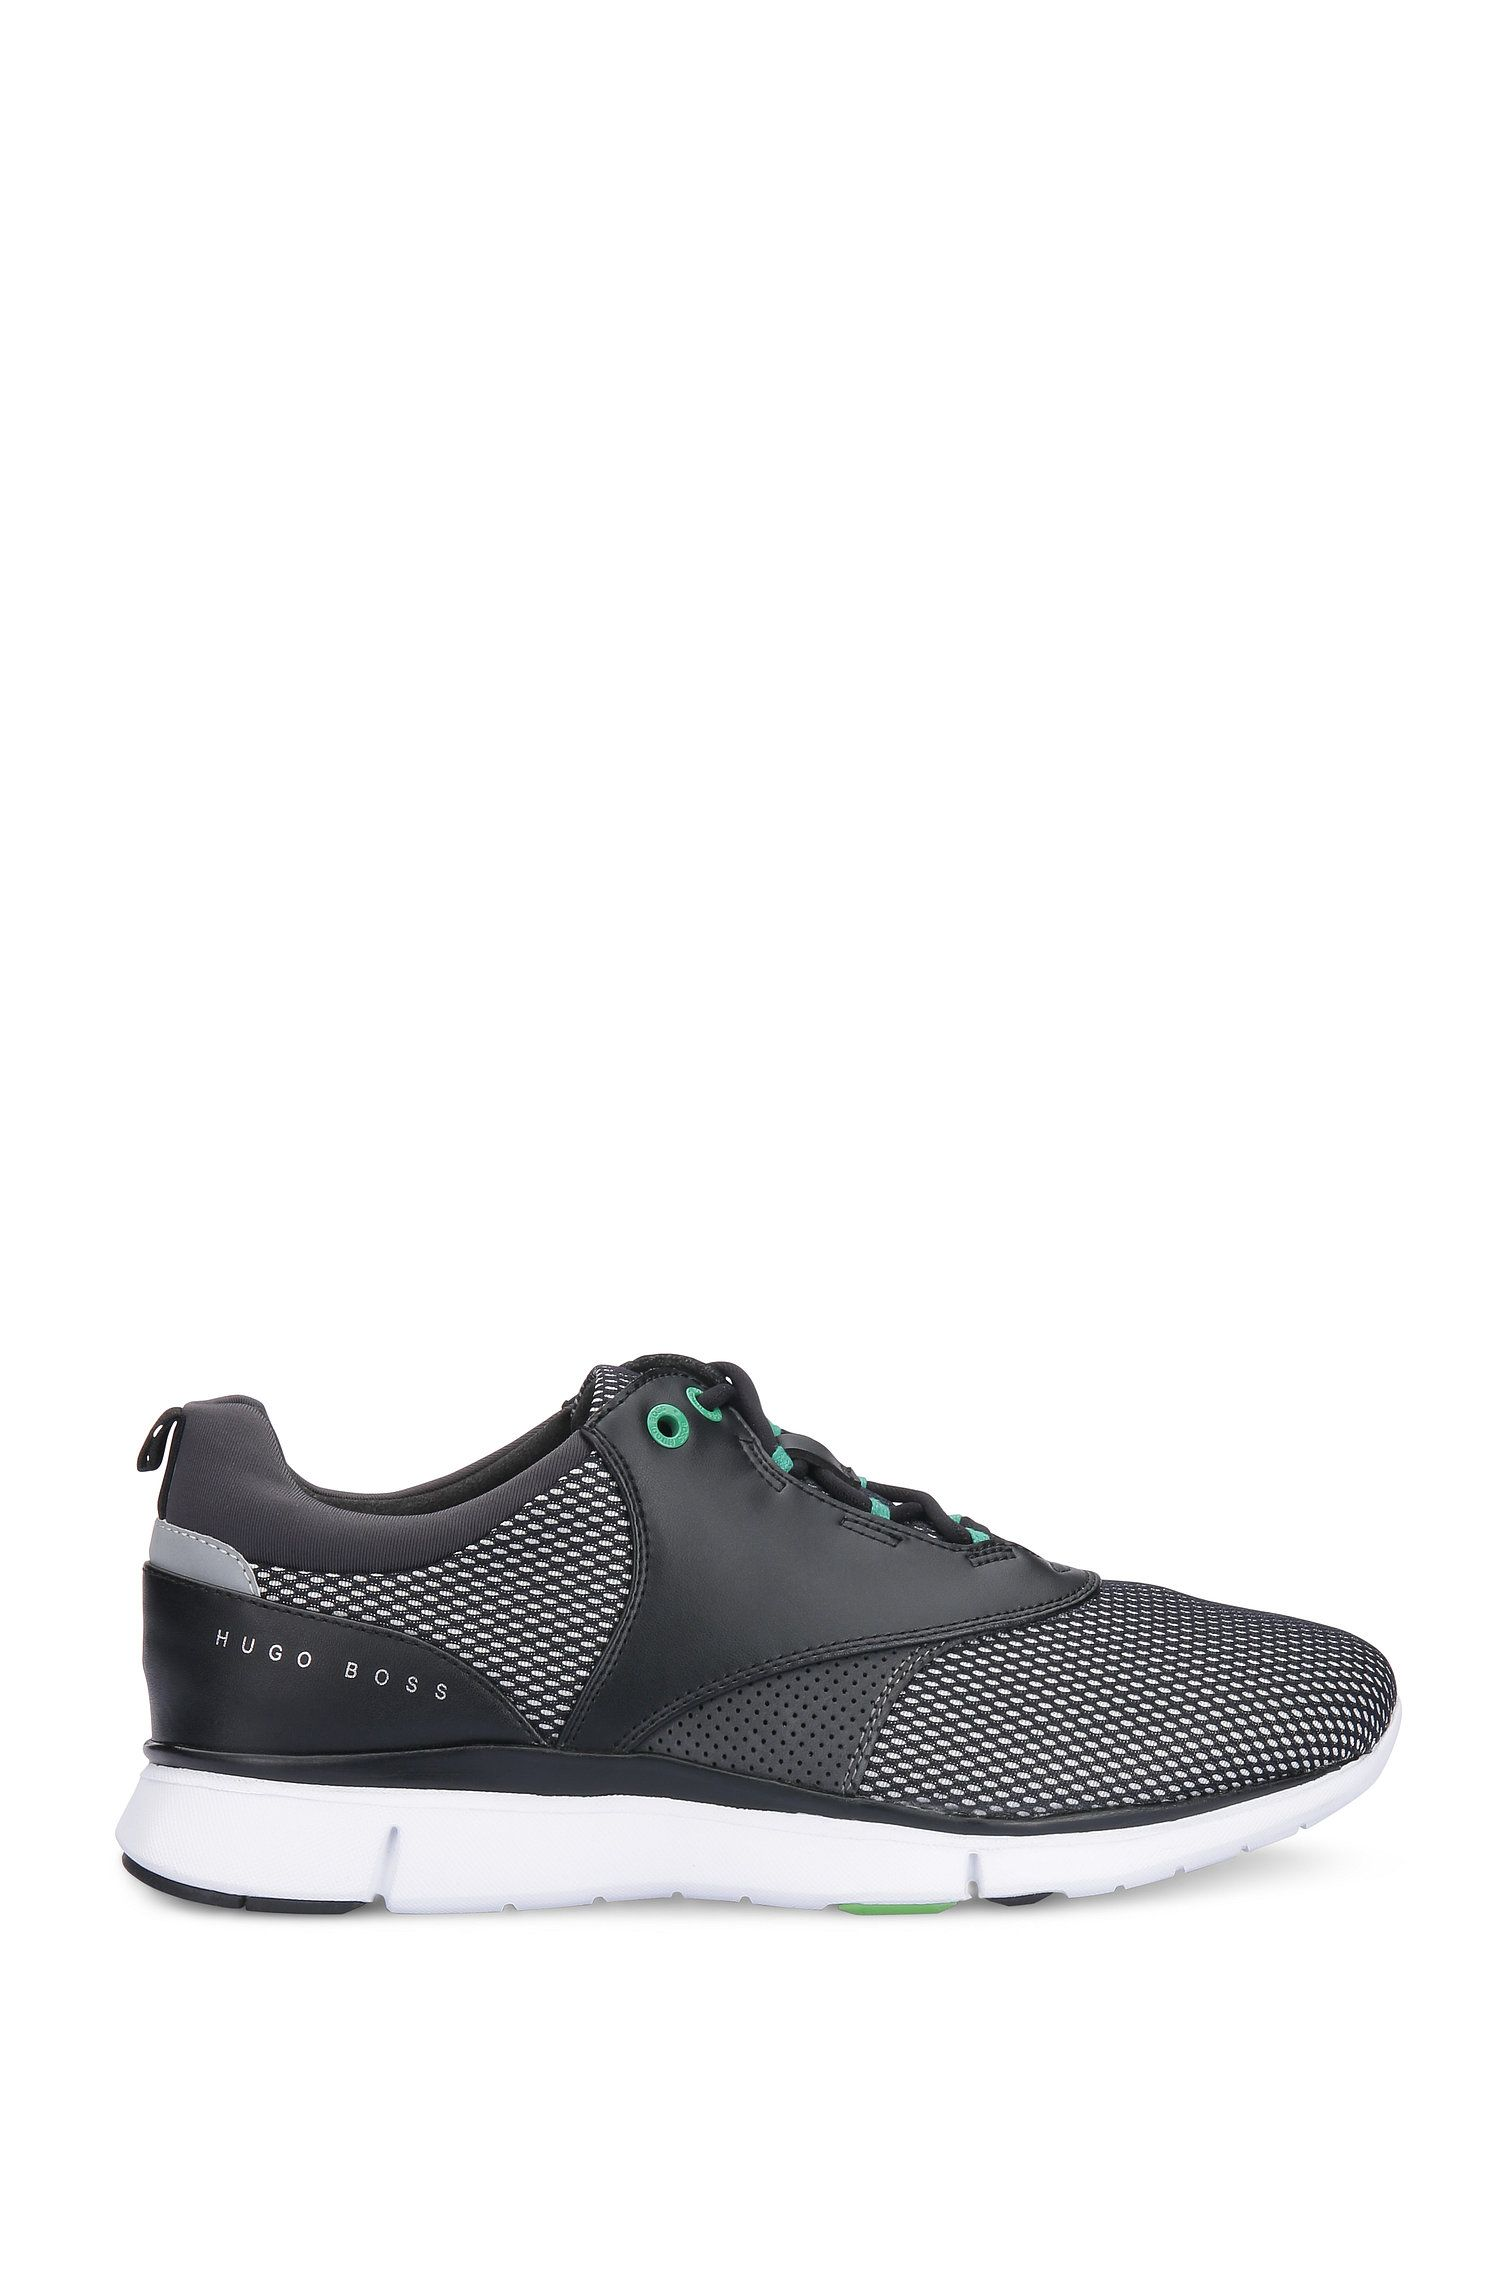 Leather Neoprene Running Sneaker | Gym Runn Nyme